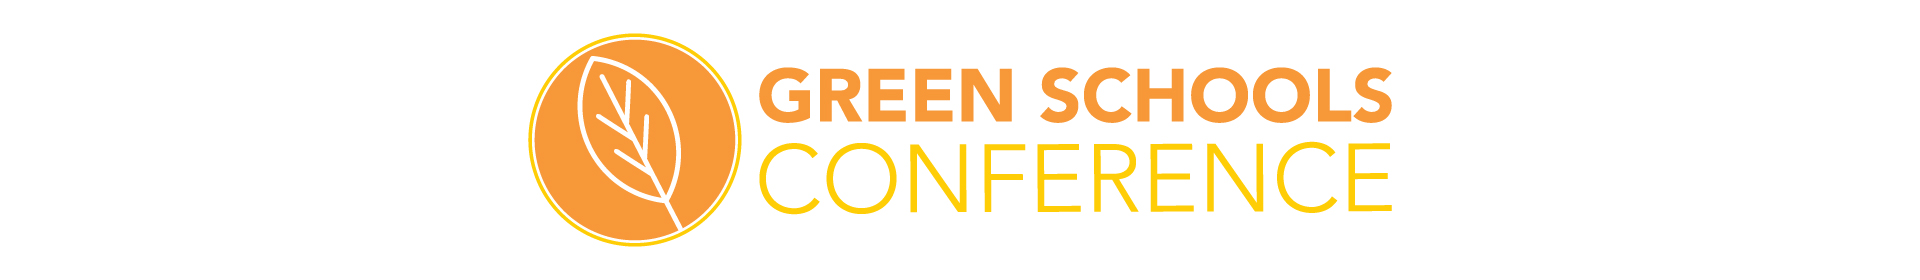 Green Schools Conference 2021 Event Banner